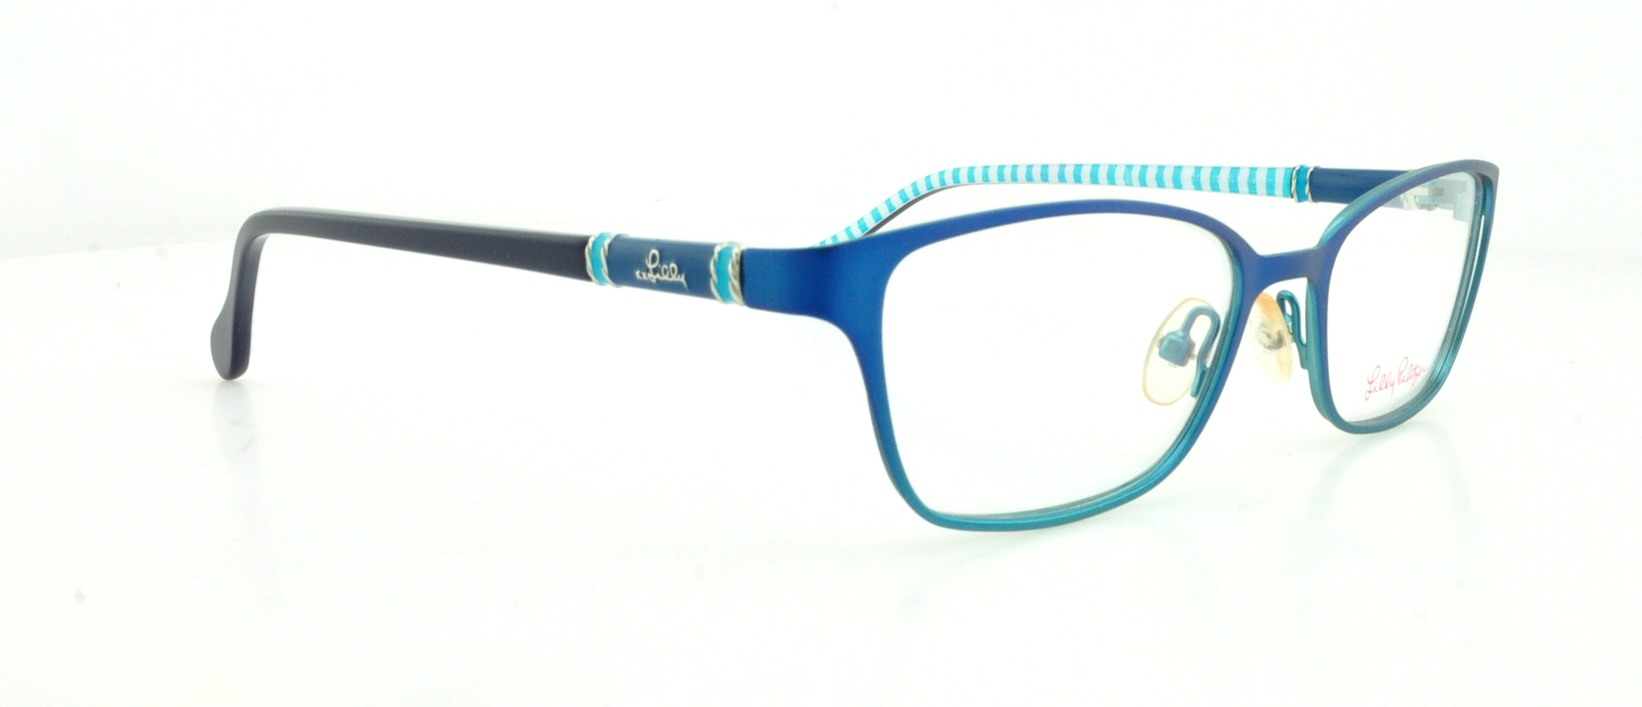 LILLY PULITZER Eyeglasses CHATHAM Blue Fade 49MM 715317965378 | eBay